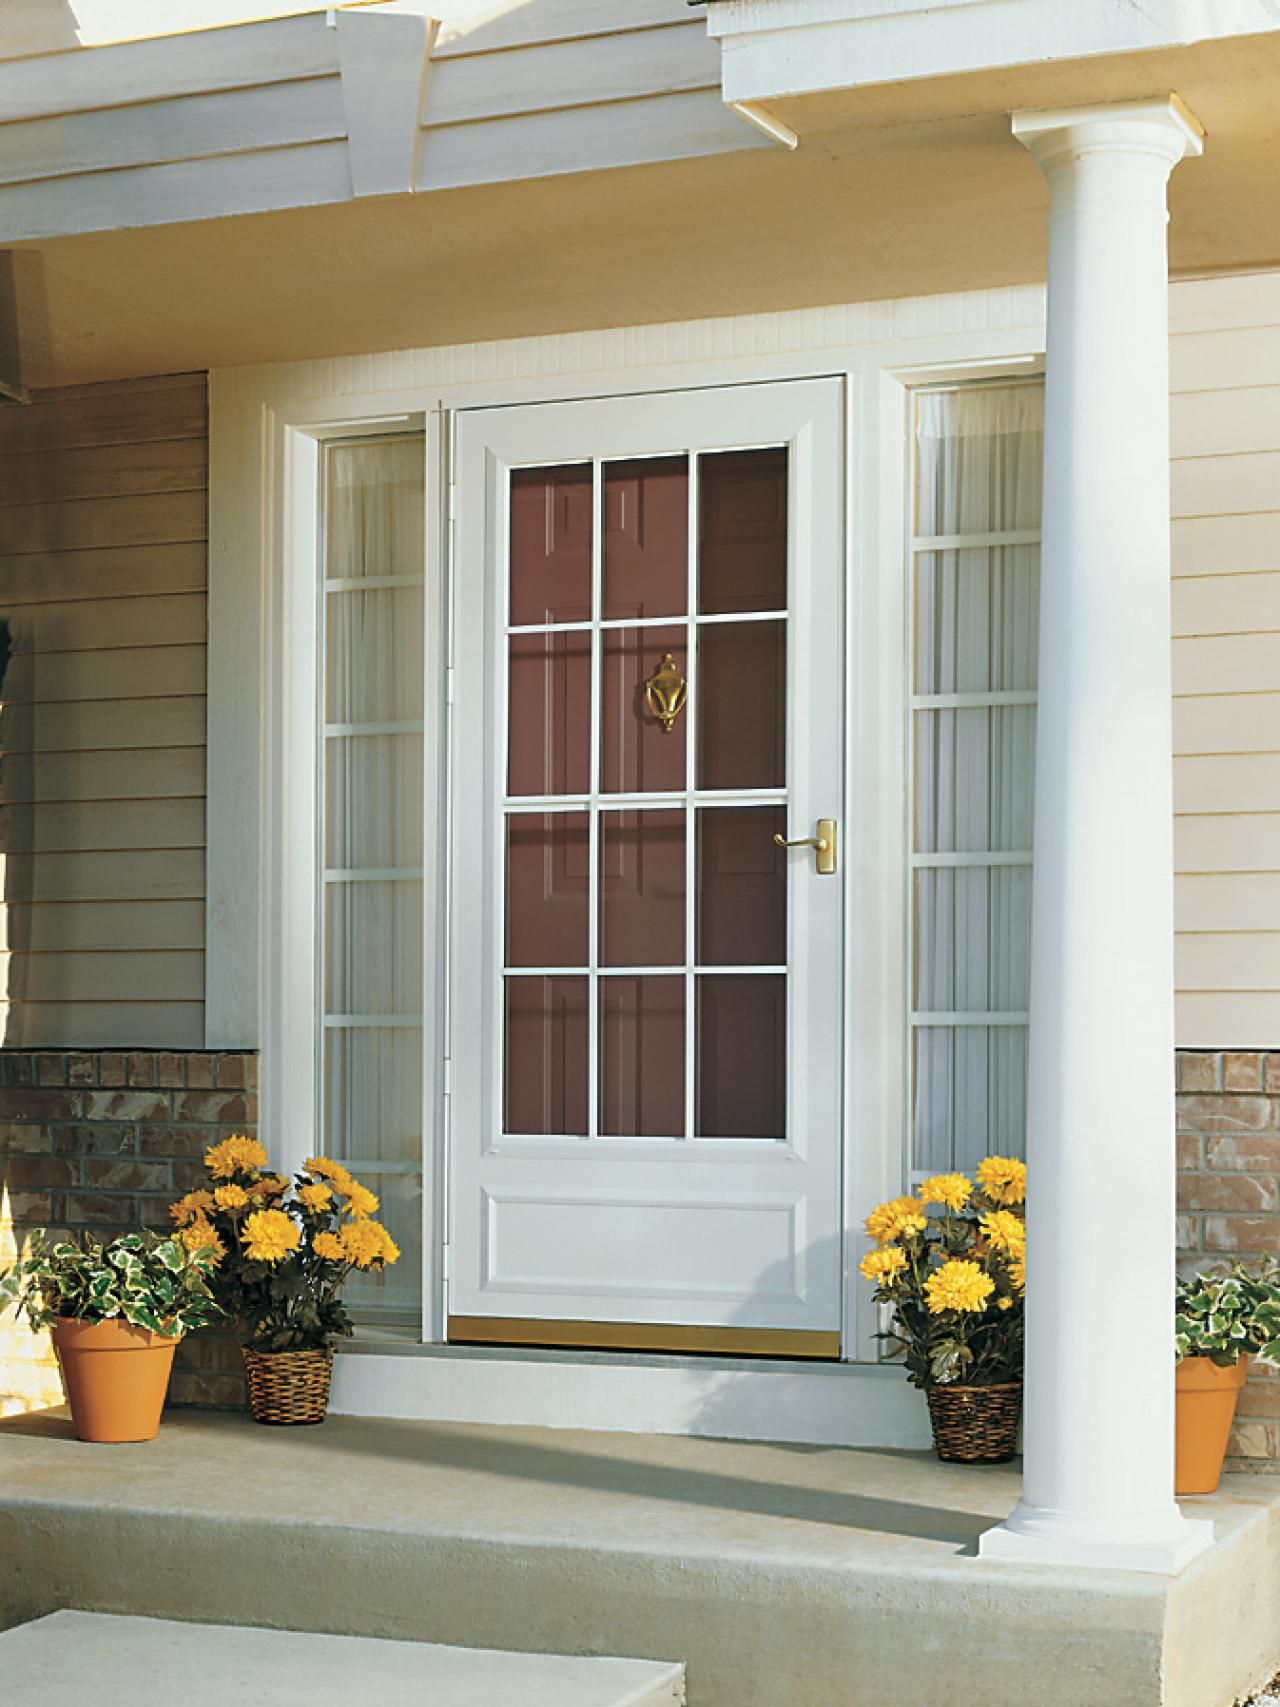 Lowes Frames | Storm Door Lowes | Screen Doors Lowes | For the Home on